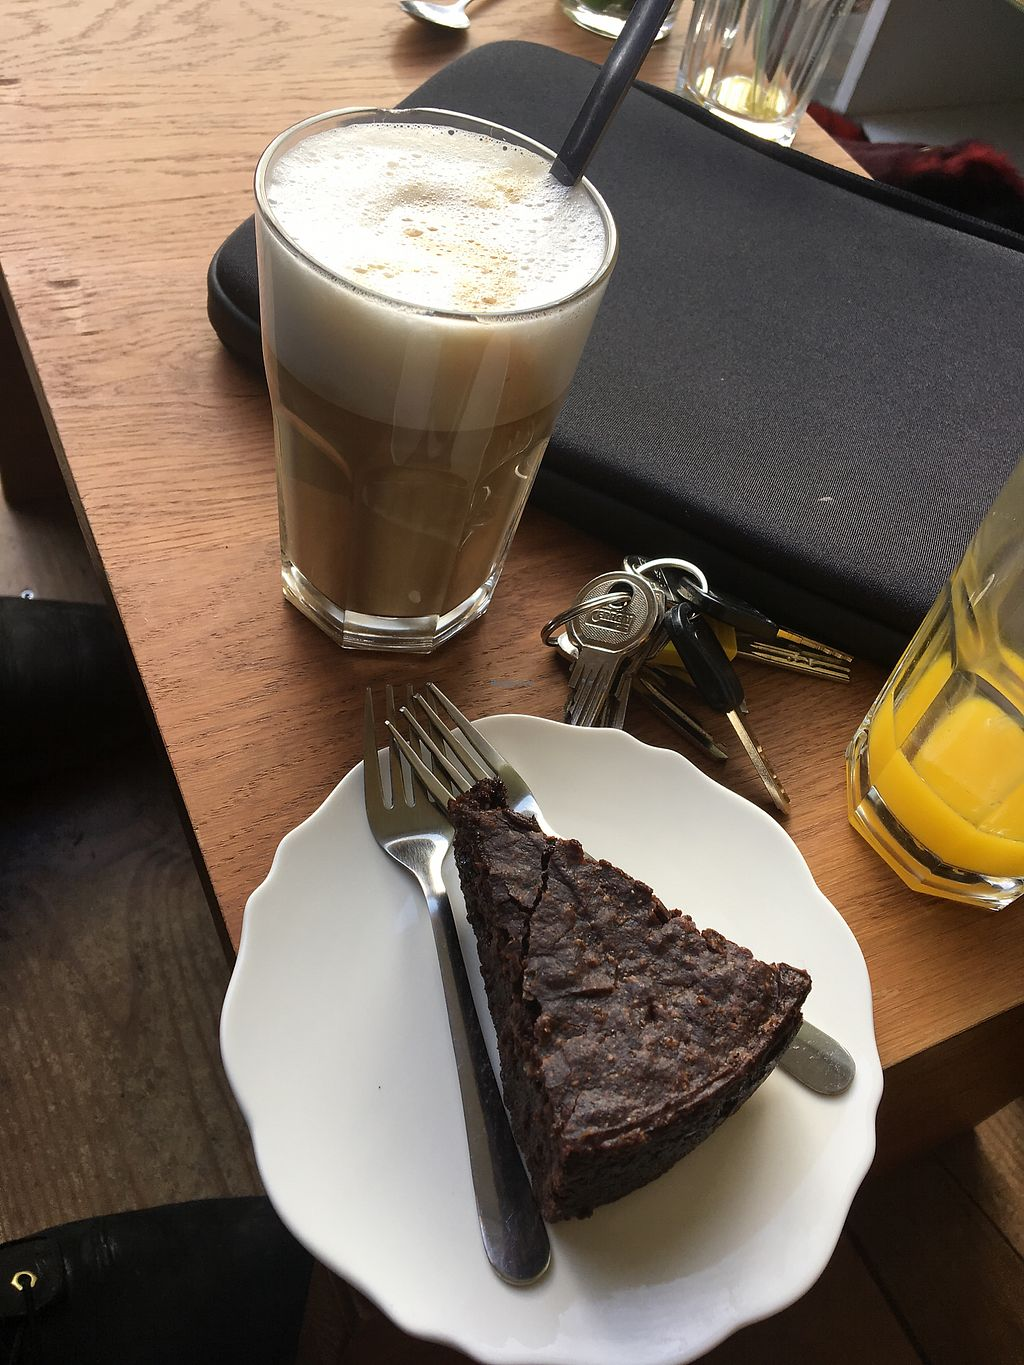 """Photo of Vegabond Store & Cafe  by <a href=""""/members/profile/KelseyHudspeth"""">KelseyHudspeth</a> <br/>Gluten free chocolate cake  <br/> February 16, 2018  - <a href='/contact/abuse/image/49271/360043'>Report</a>"""